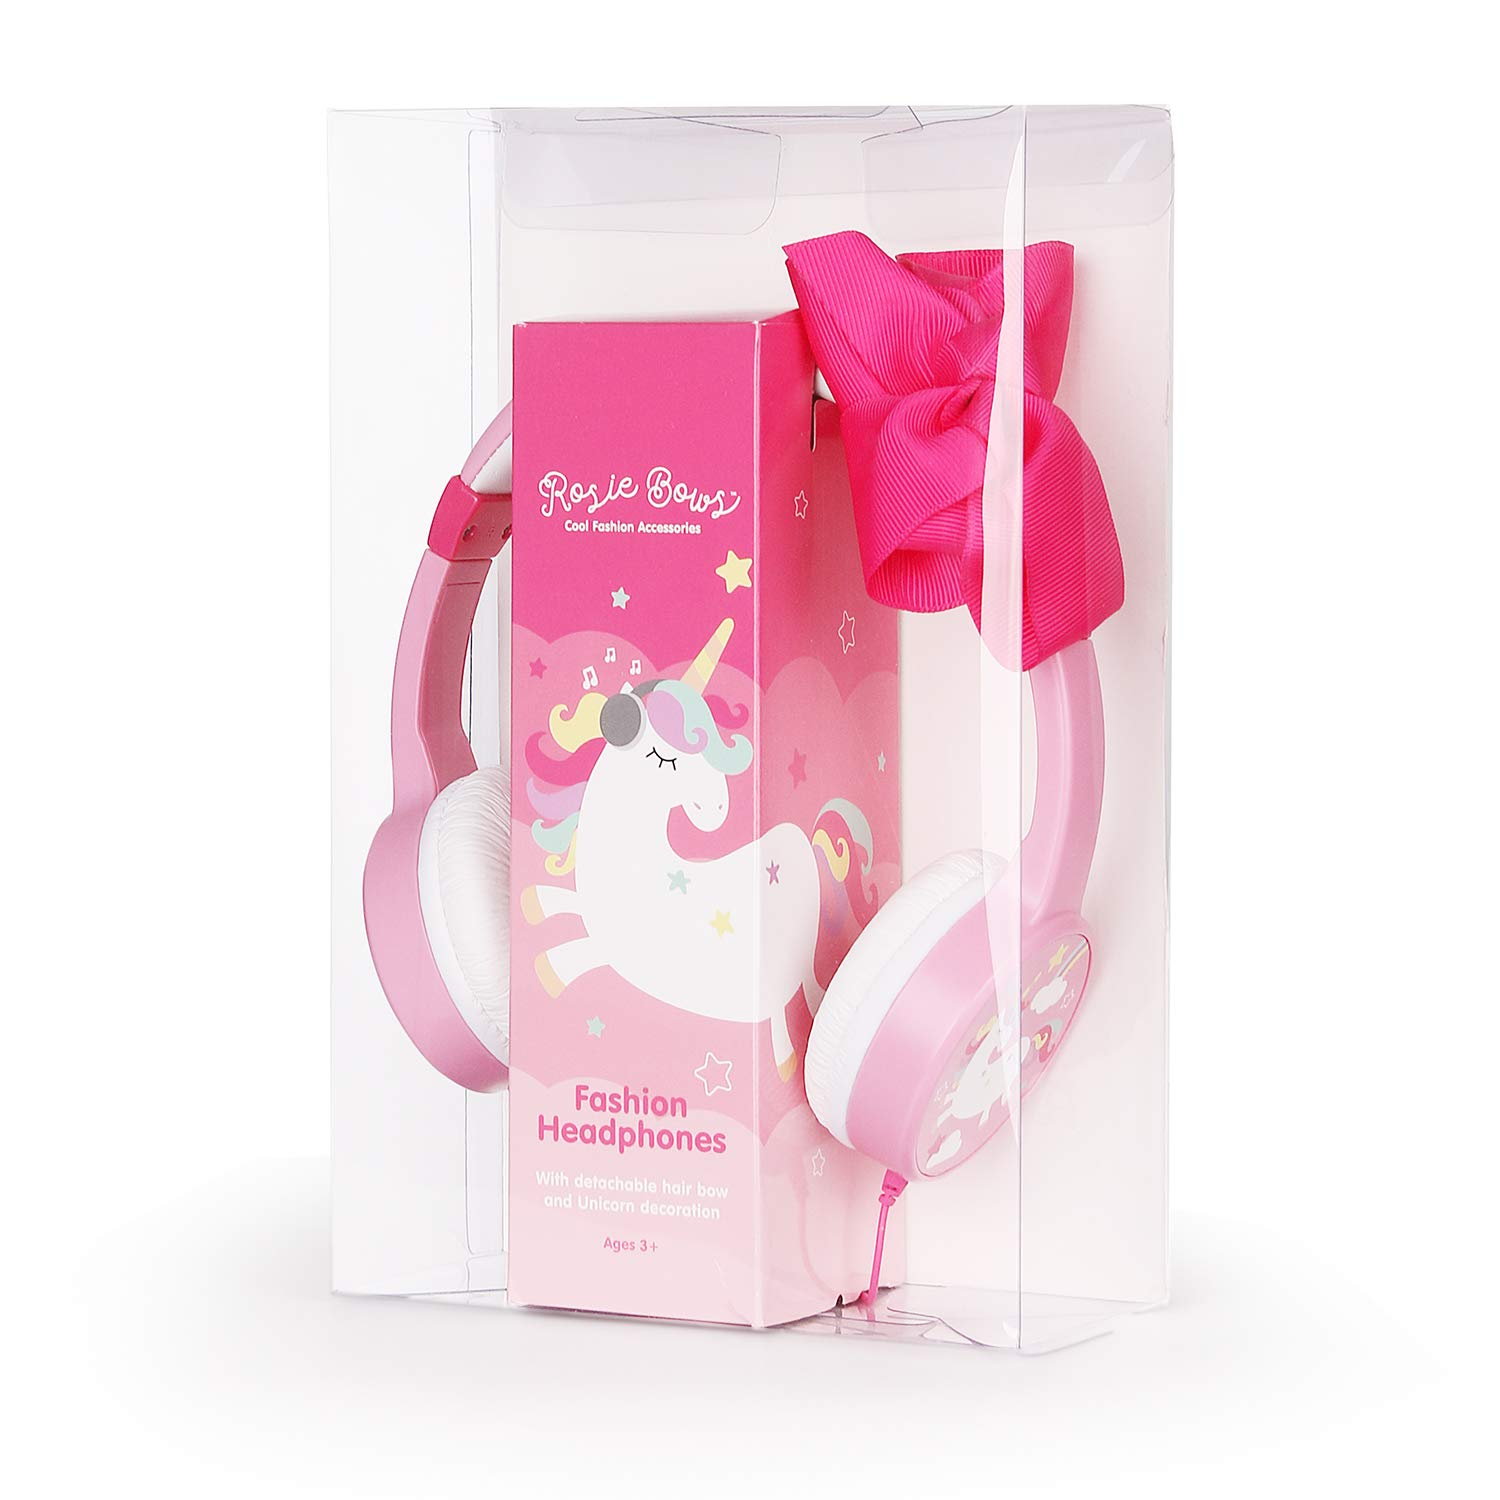 Girls Unicorn Headphones,Removable Bowknot Earphones with 85dB Volume Limited and 3.5mm Jack for iPad Cellphones Computer MP3/4 Kindle,Children Headset for School,Birthday Gifts (Bowknot) by JBUNION (Image #7)